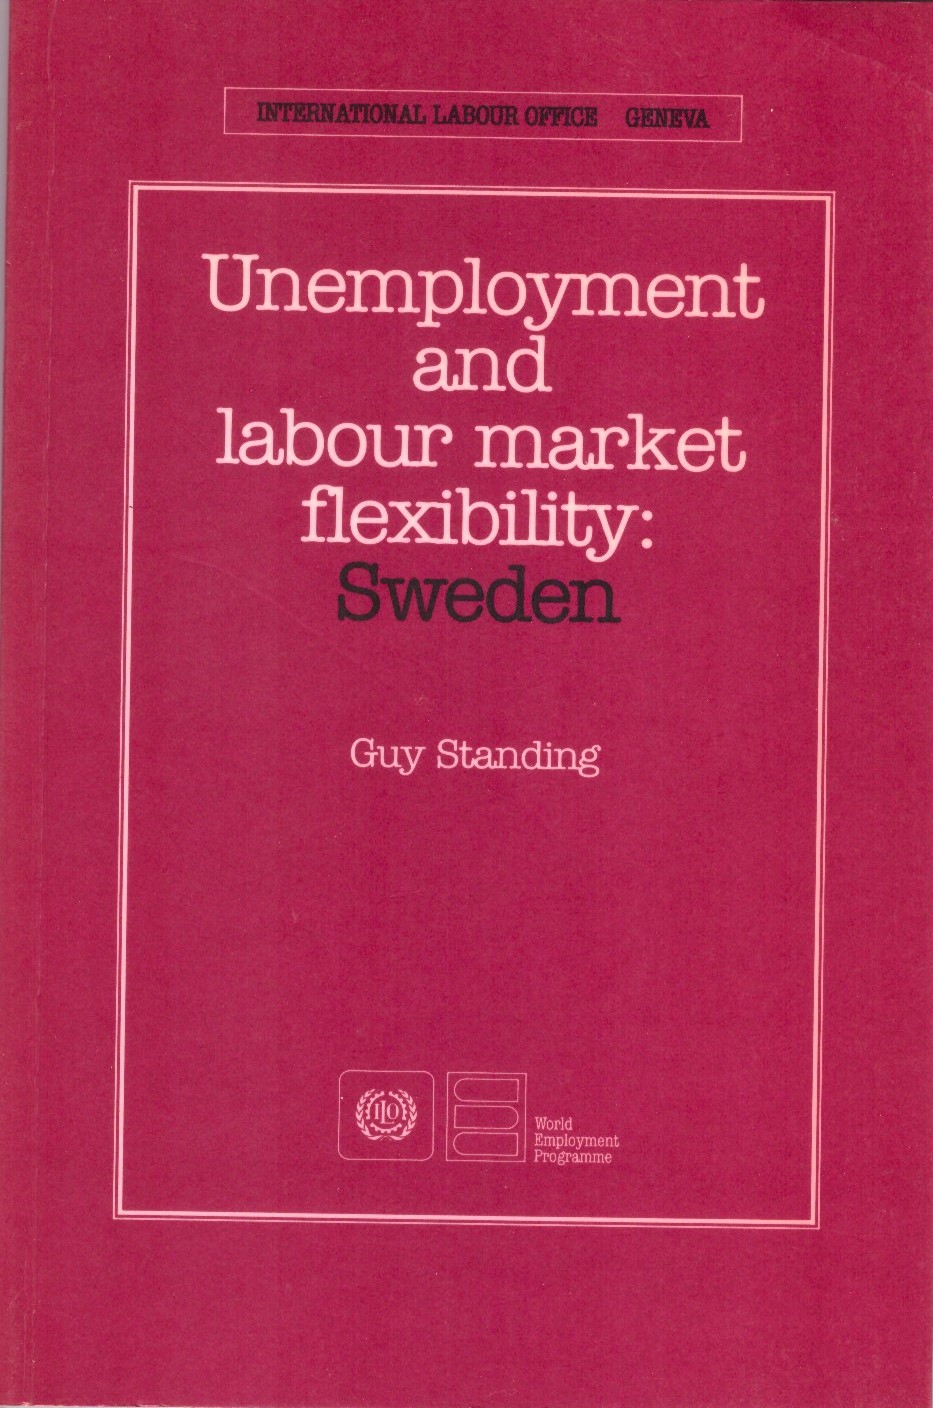 Unemployment and Labour Market Flexibility: Sweden  (Geneva: ILO, 1988).      Translations    ●    Details